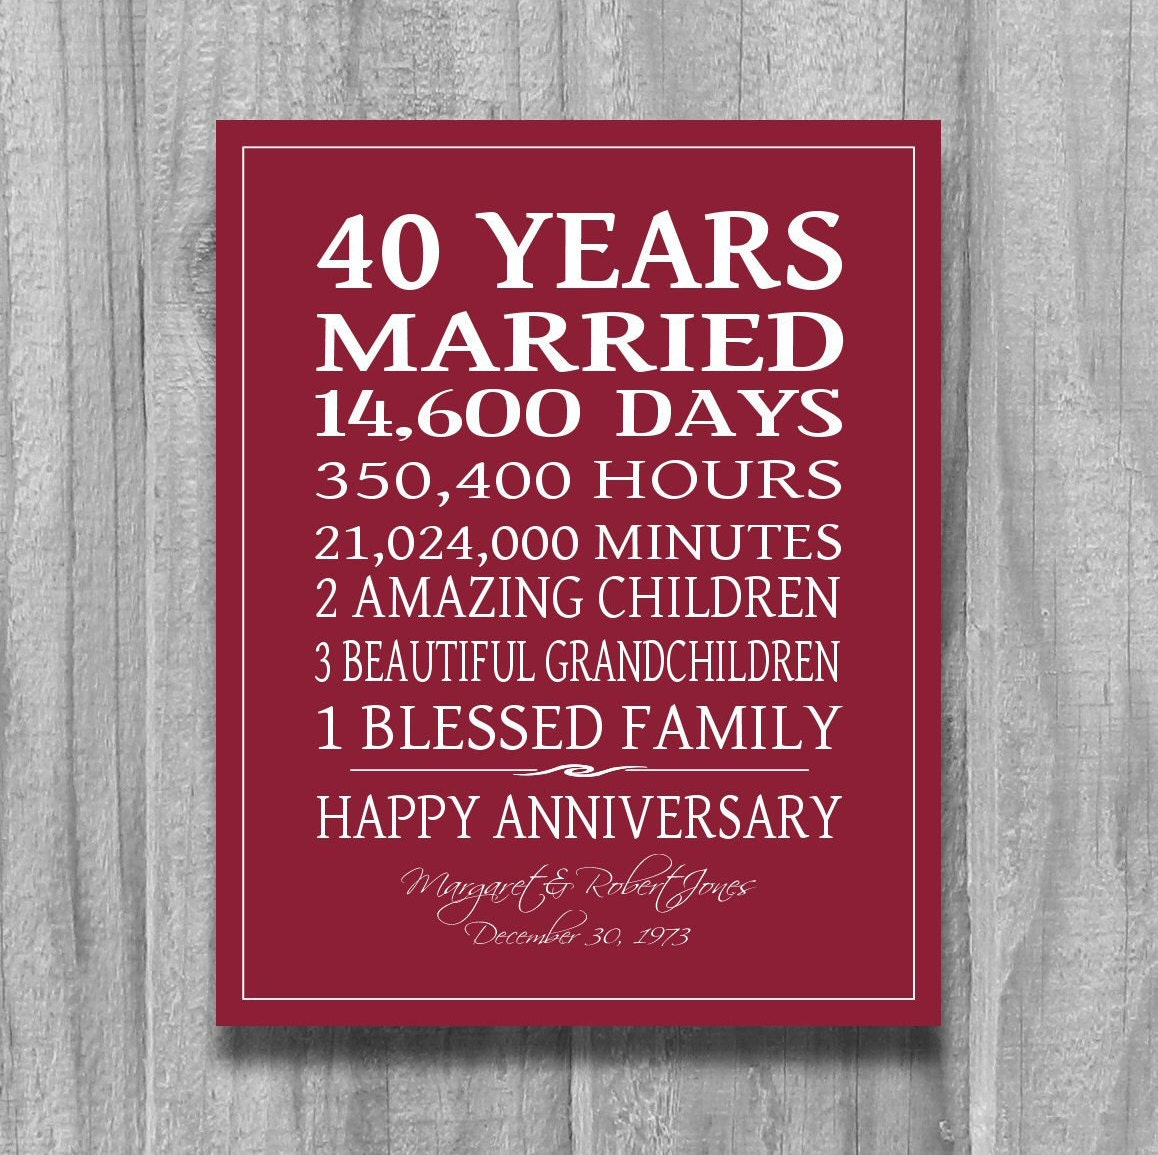 Ruby Wedding Gifts For Parents: 4Oth Anniversary Gift For Parents 40 Year Anniversary Ruby